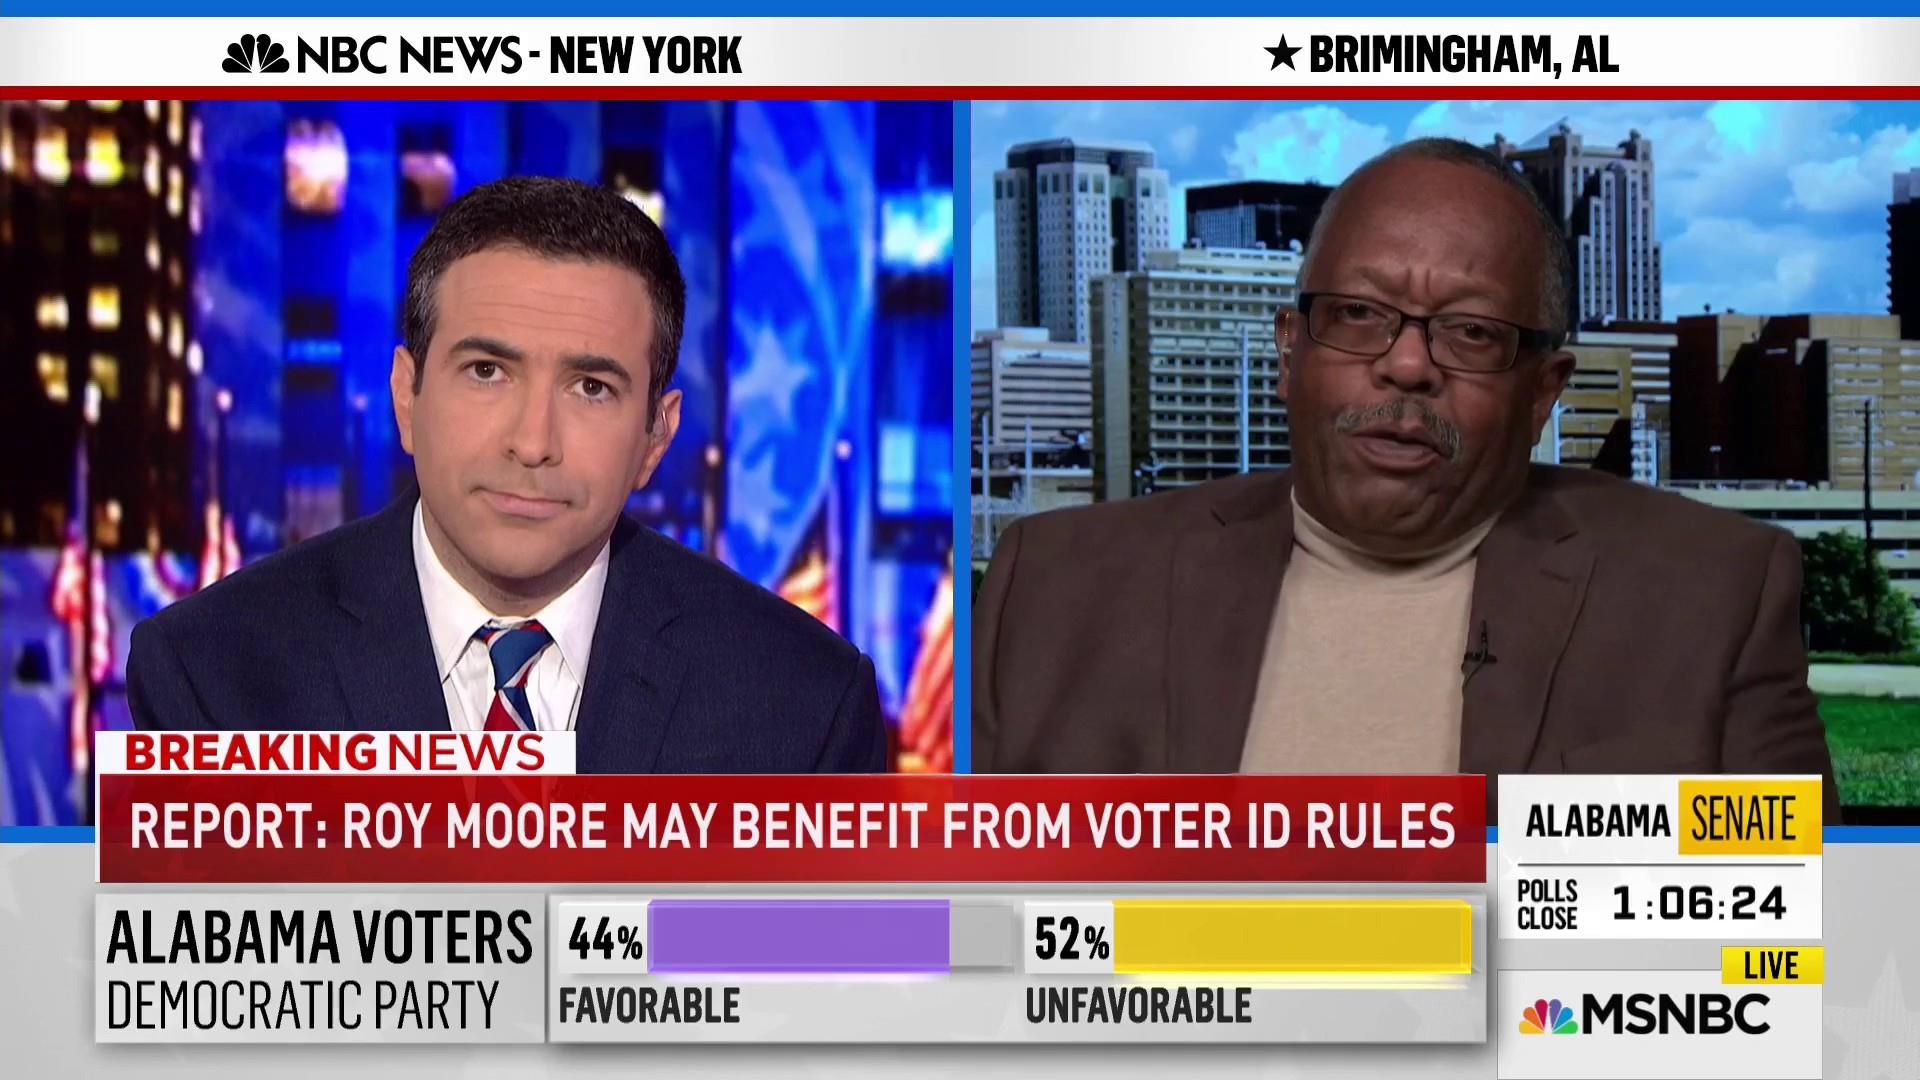 Controversial Voter ID law could impact Alabama Senate race